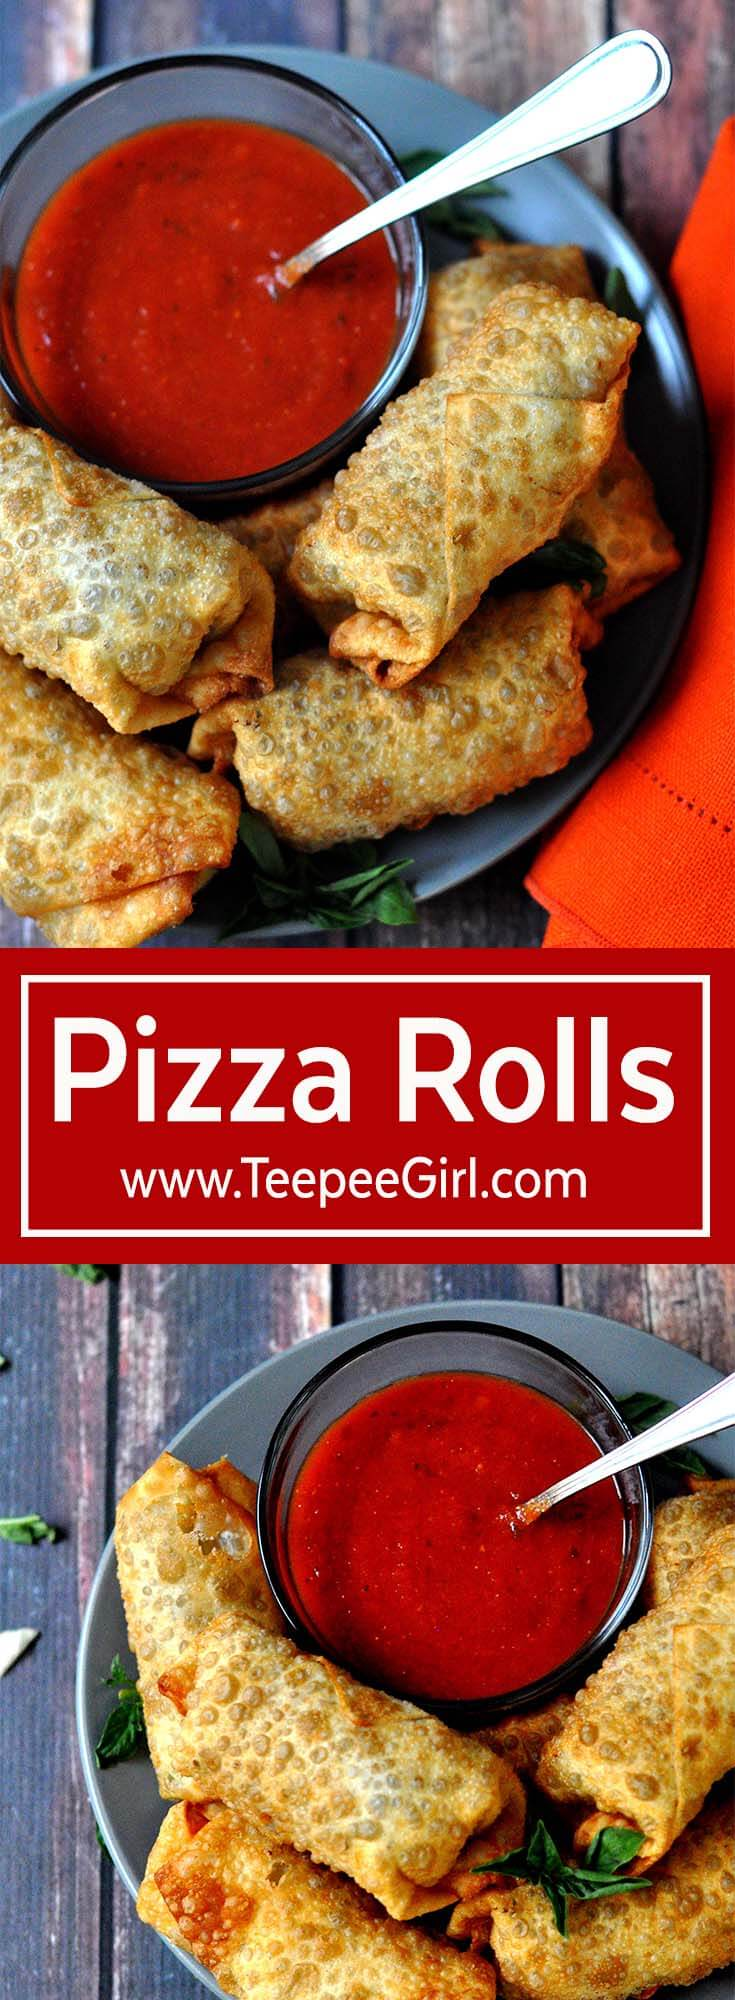 These pizza rolls have been a family favorite for decades! Imagine a supreme pizza rolled up in an egg roll wrapper and fried to perfection. Add some marinara sauce for dipping, and you have a crowd pleaser! www.TeepeeGirl.com